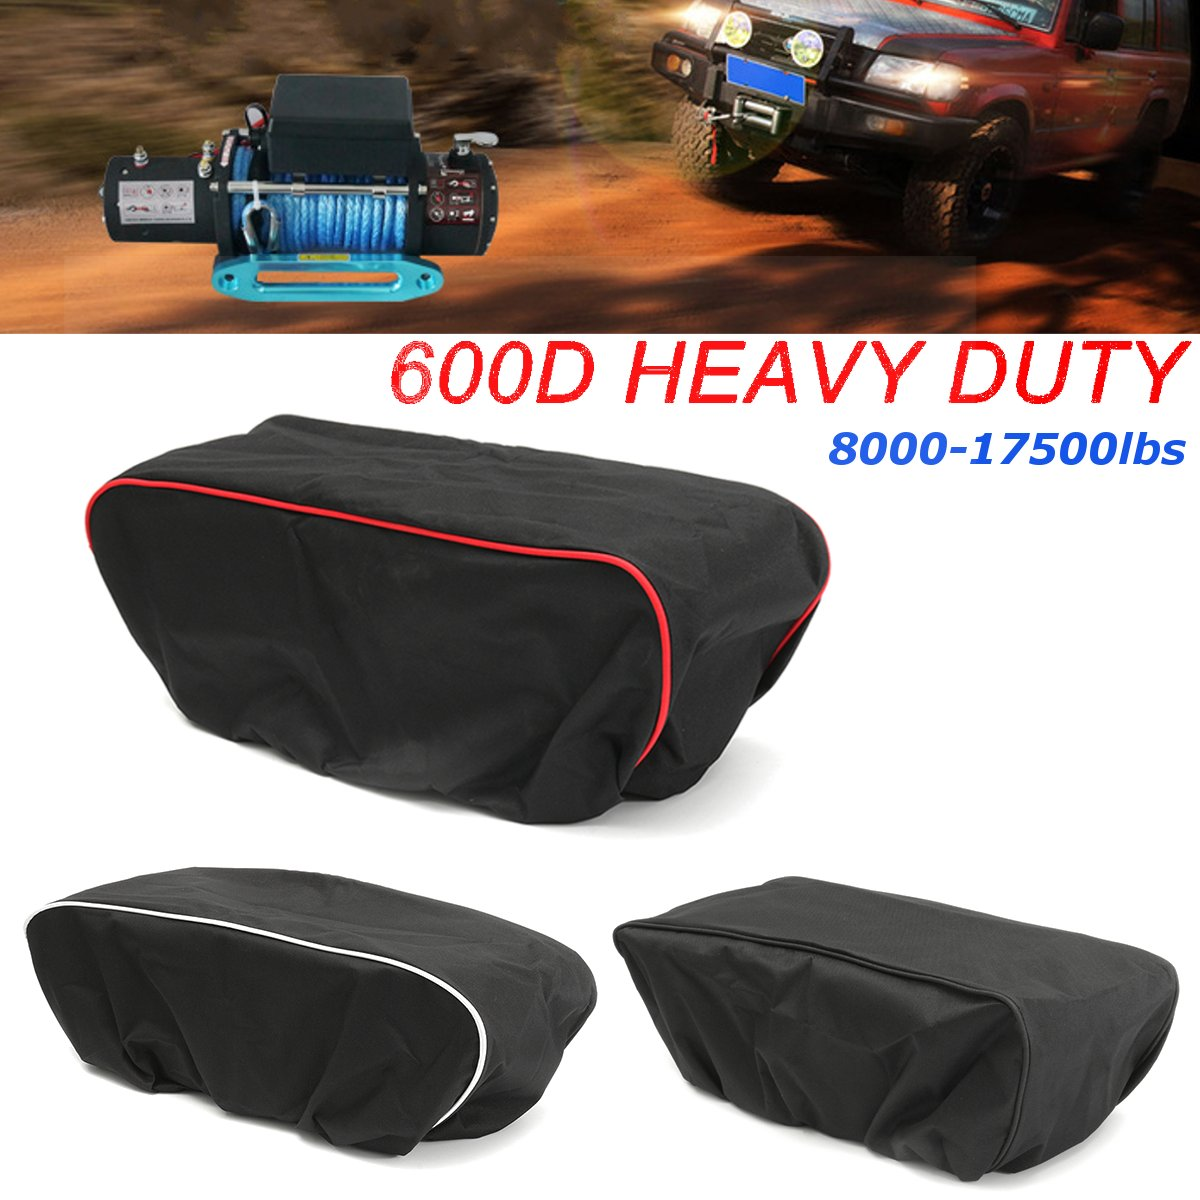 Persevering Black/white/red 600d Waterproof Car Cover Soft Winch Dust Cover 8,000-17,500 Lbs Trailer Suvs Nylon Oxford 56*24*18cm Convenient To Cook